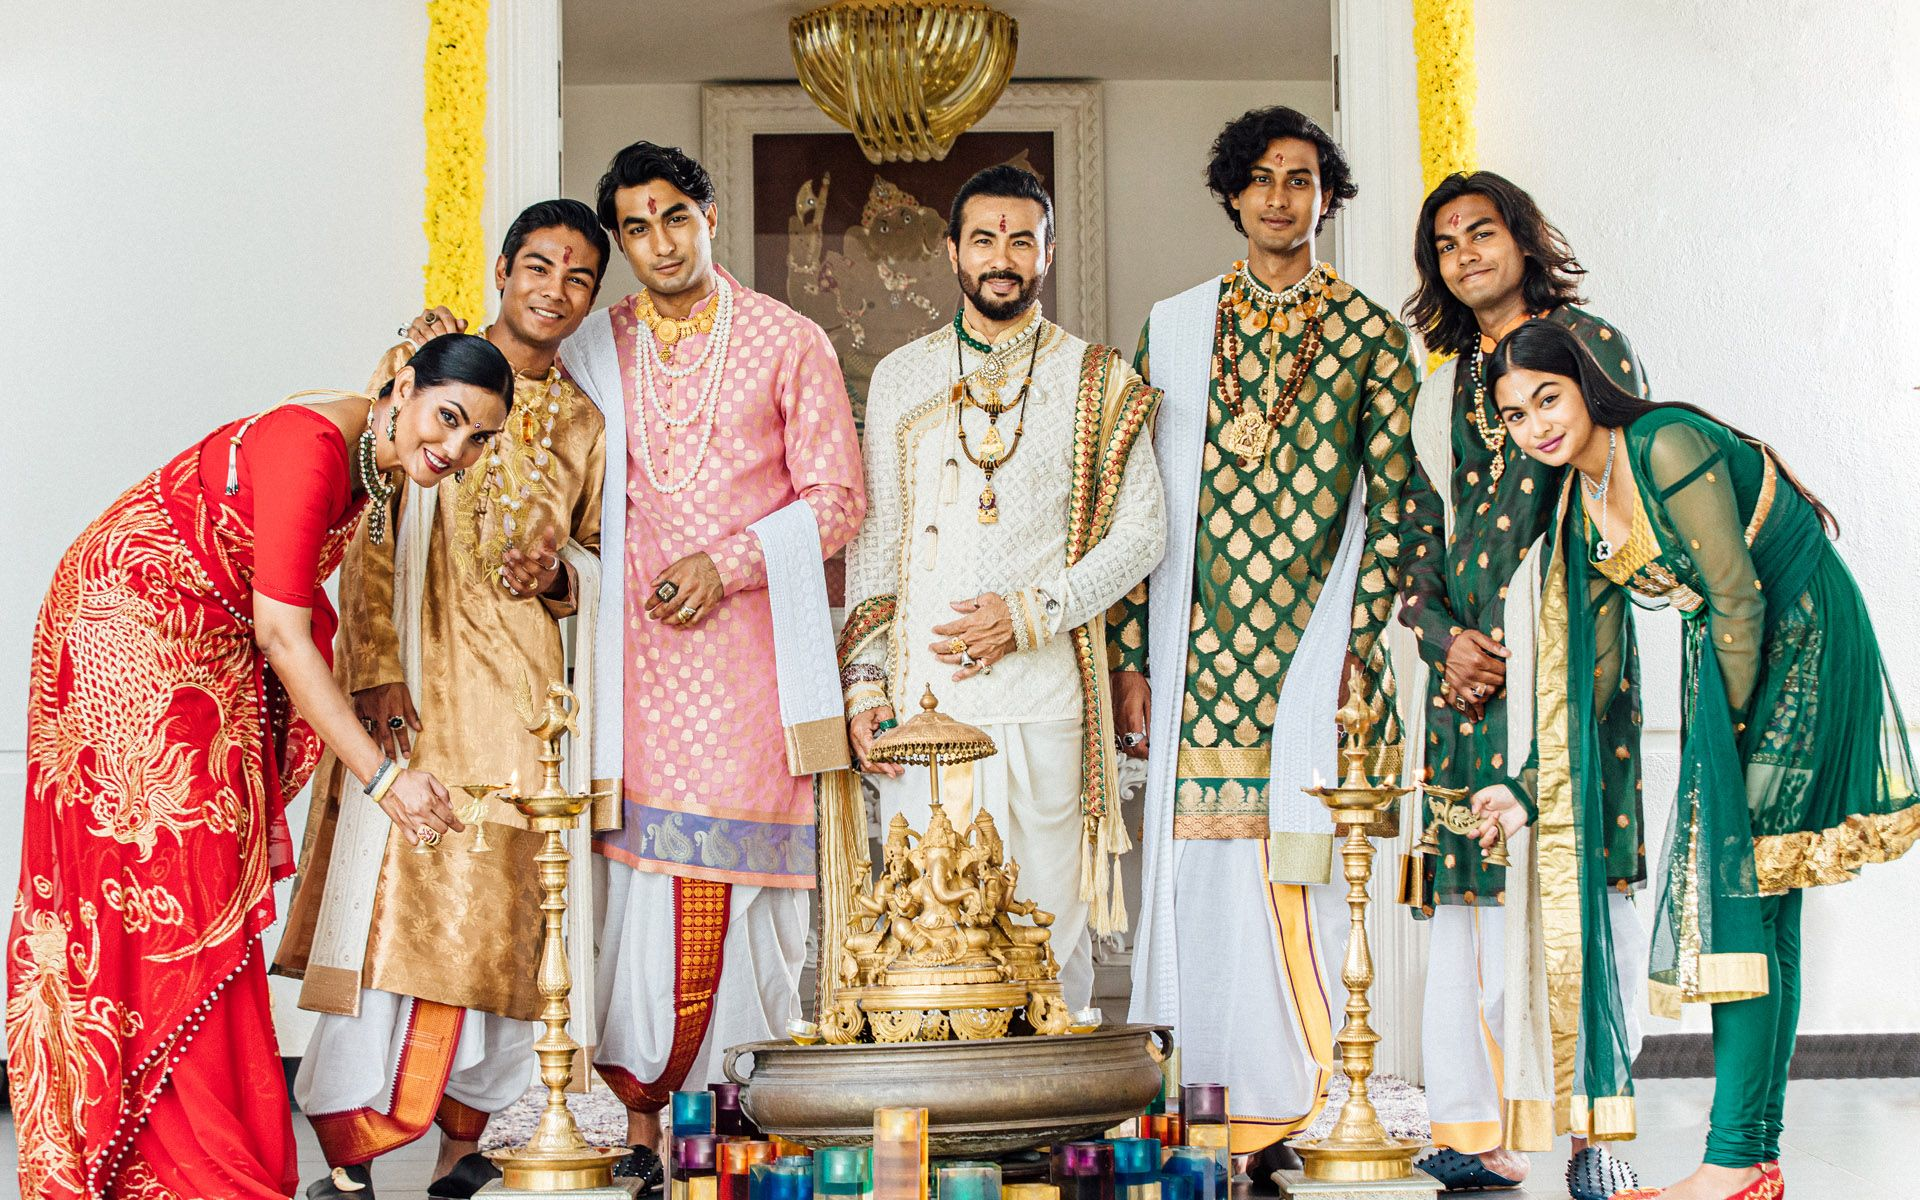 Why These Diwali Traditions By Dato' Sri Bernard Chandran & Family Will Never Go Out Of Style